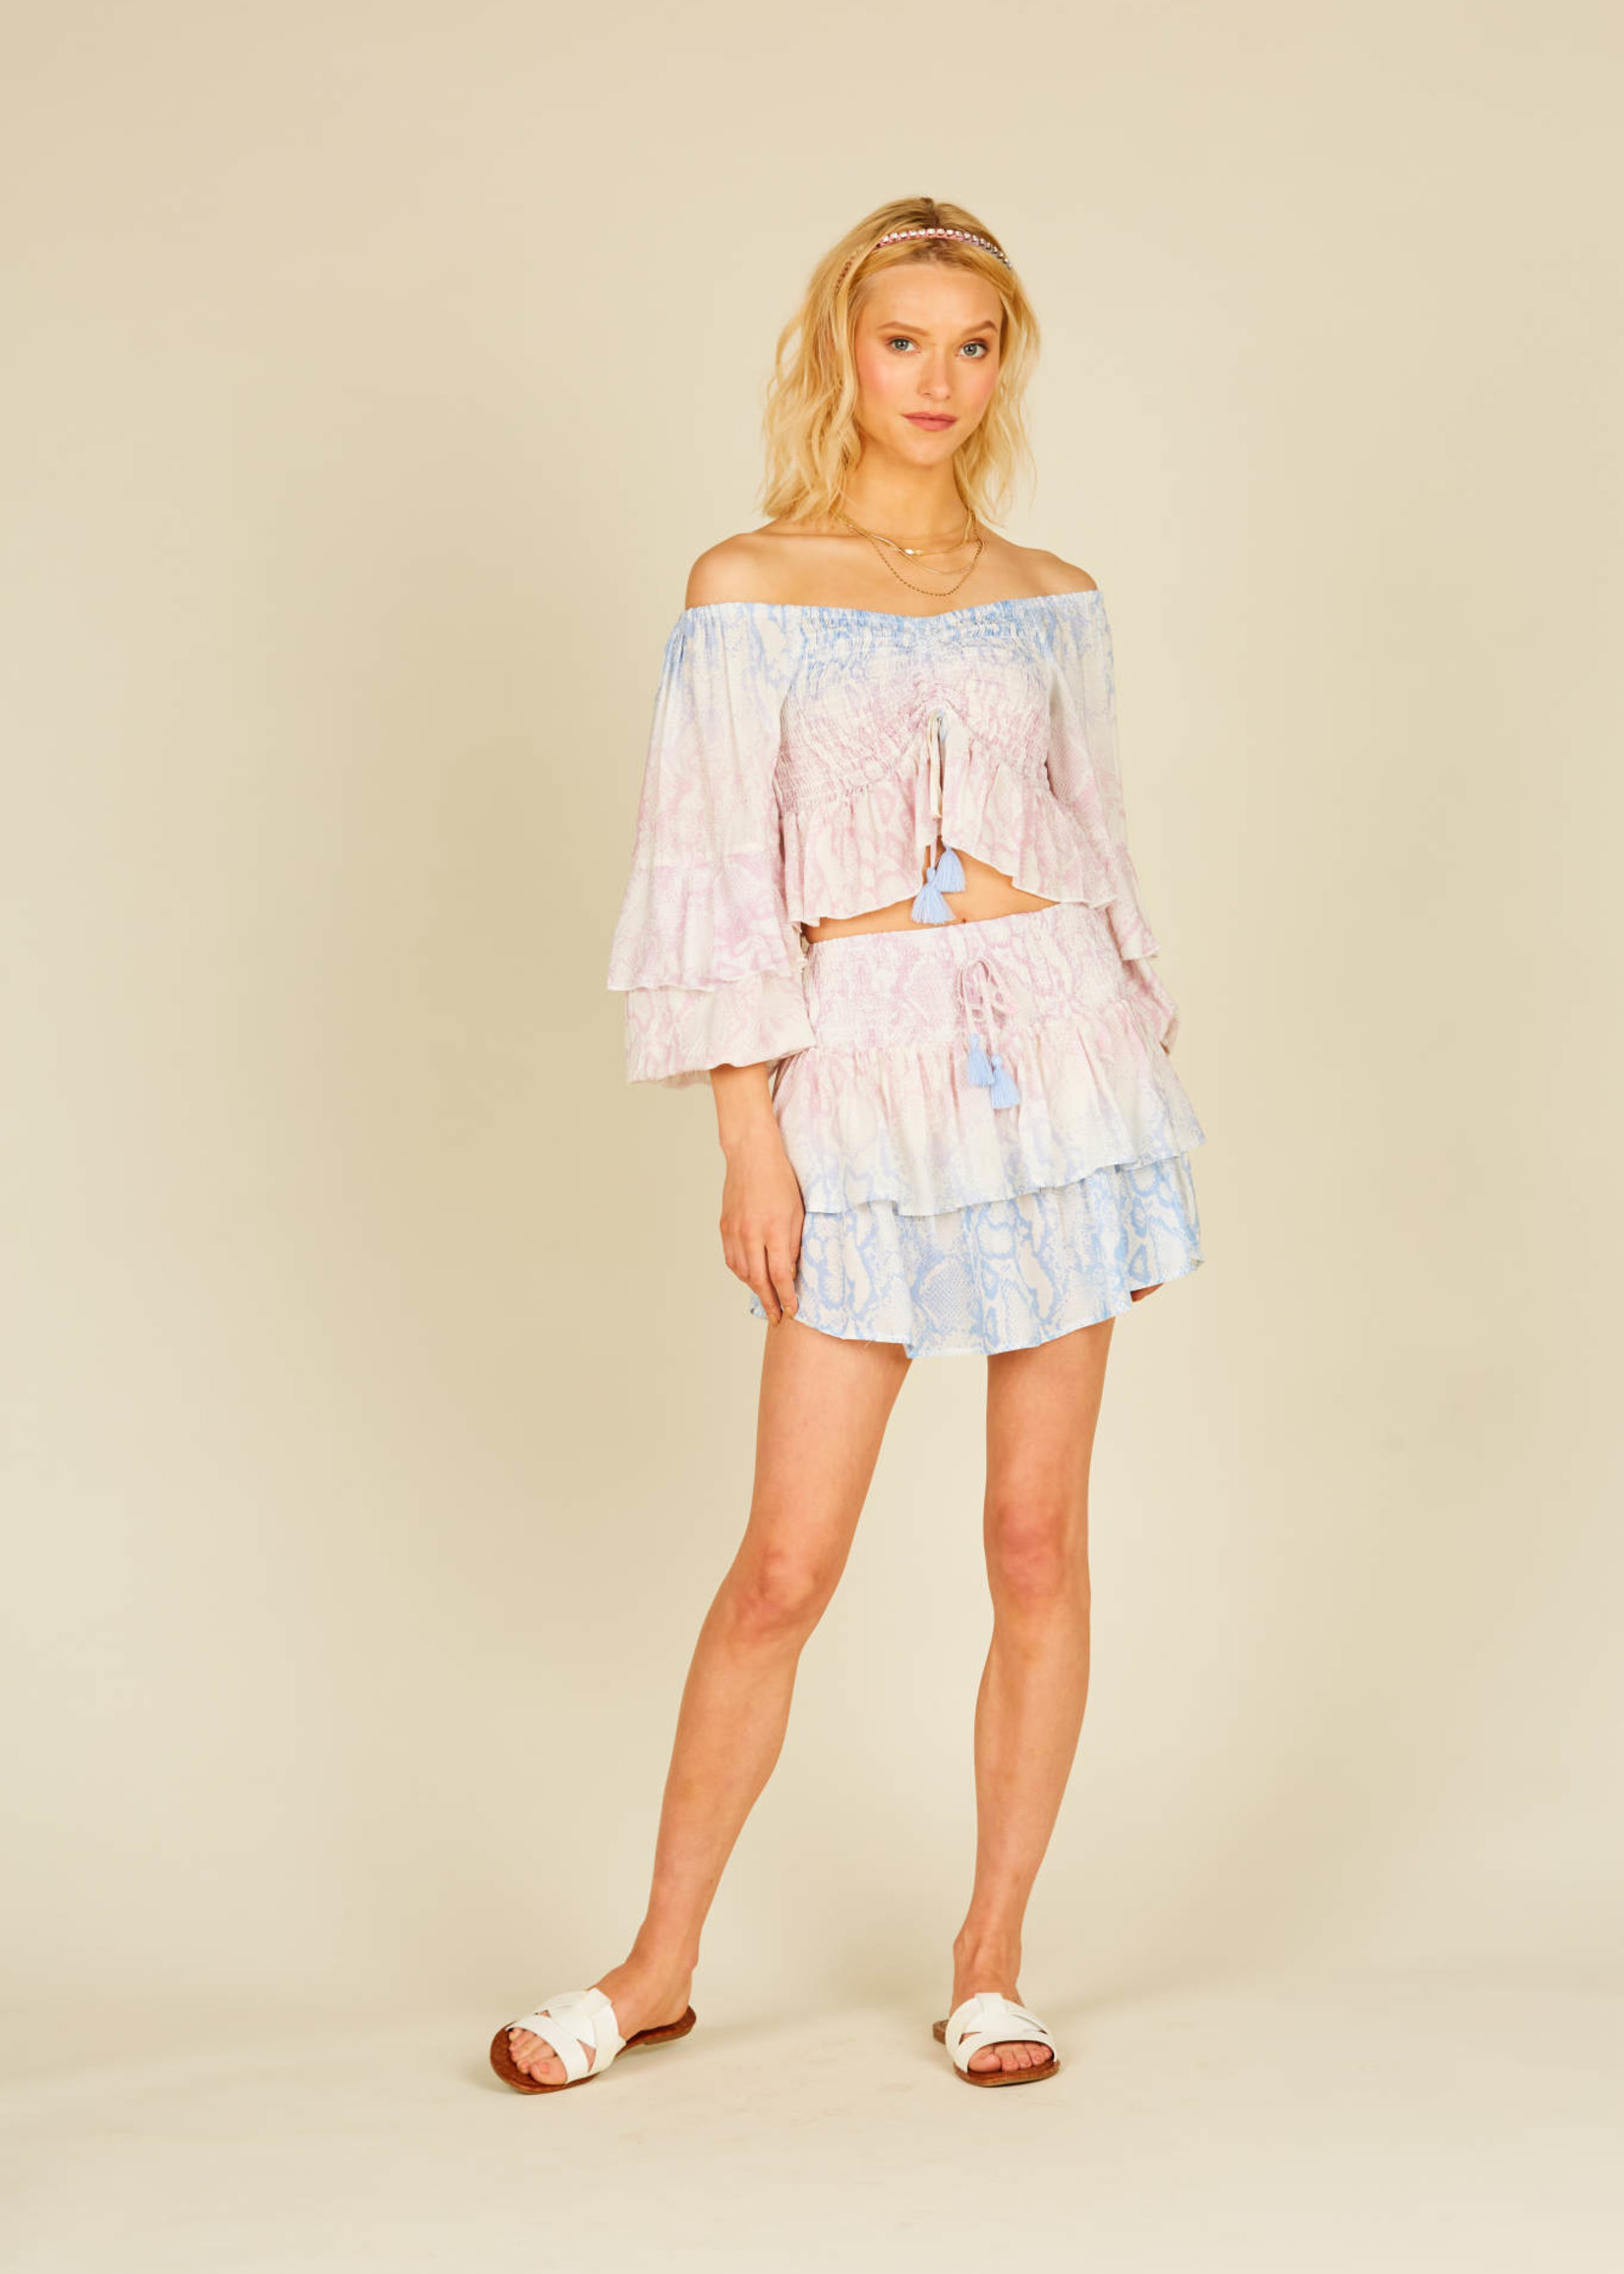 Surf Gypsy Ombrè Snakeskin Rouched Ruffle Top